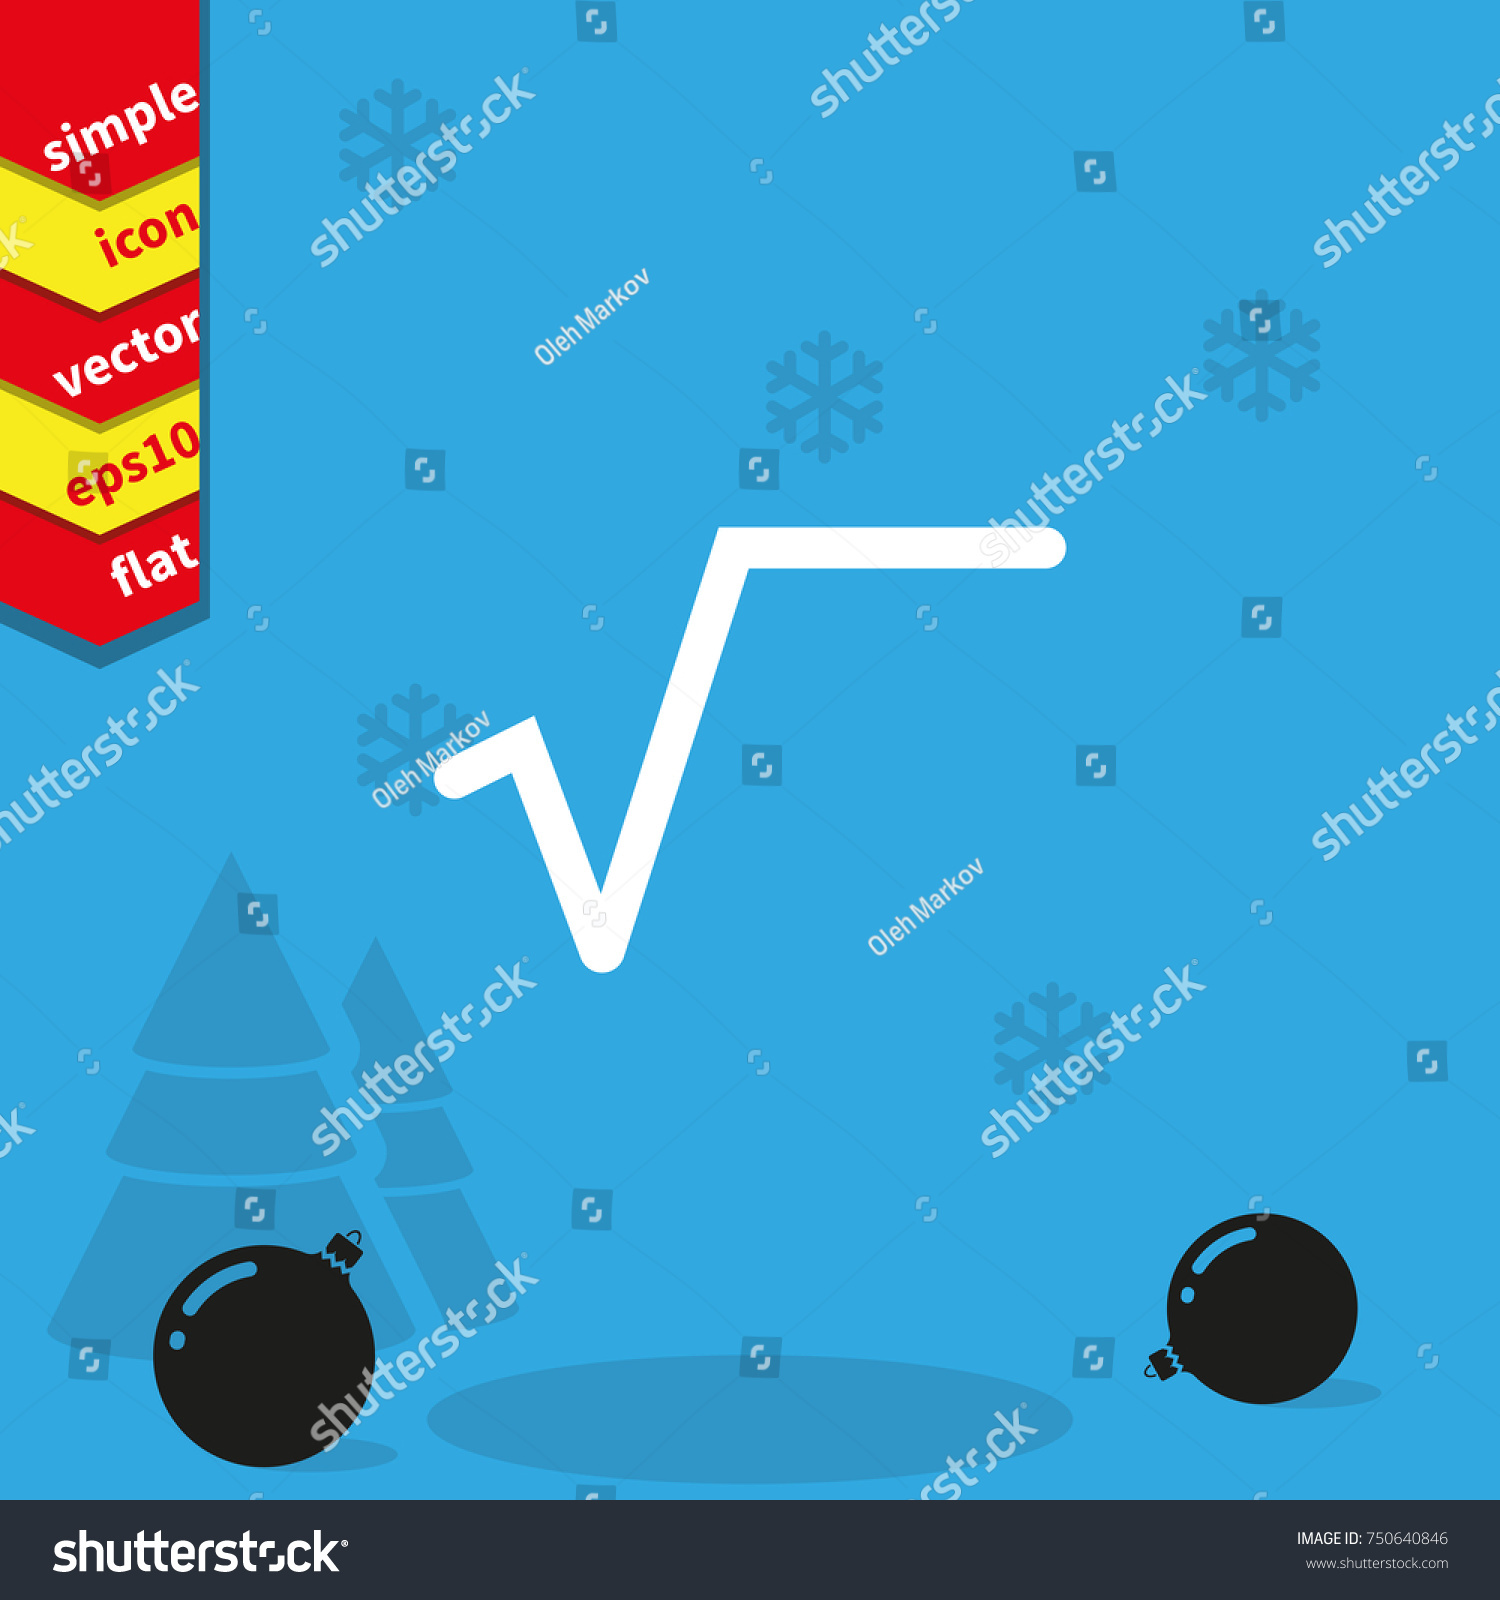 Square root symbol flat icon stock vector 750640846 shutterstock square root symbol flat icon buycottarizona Images